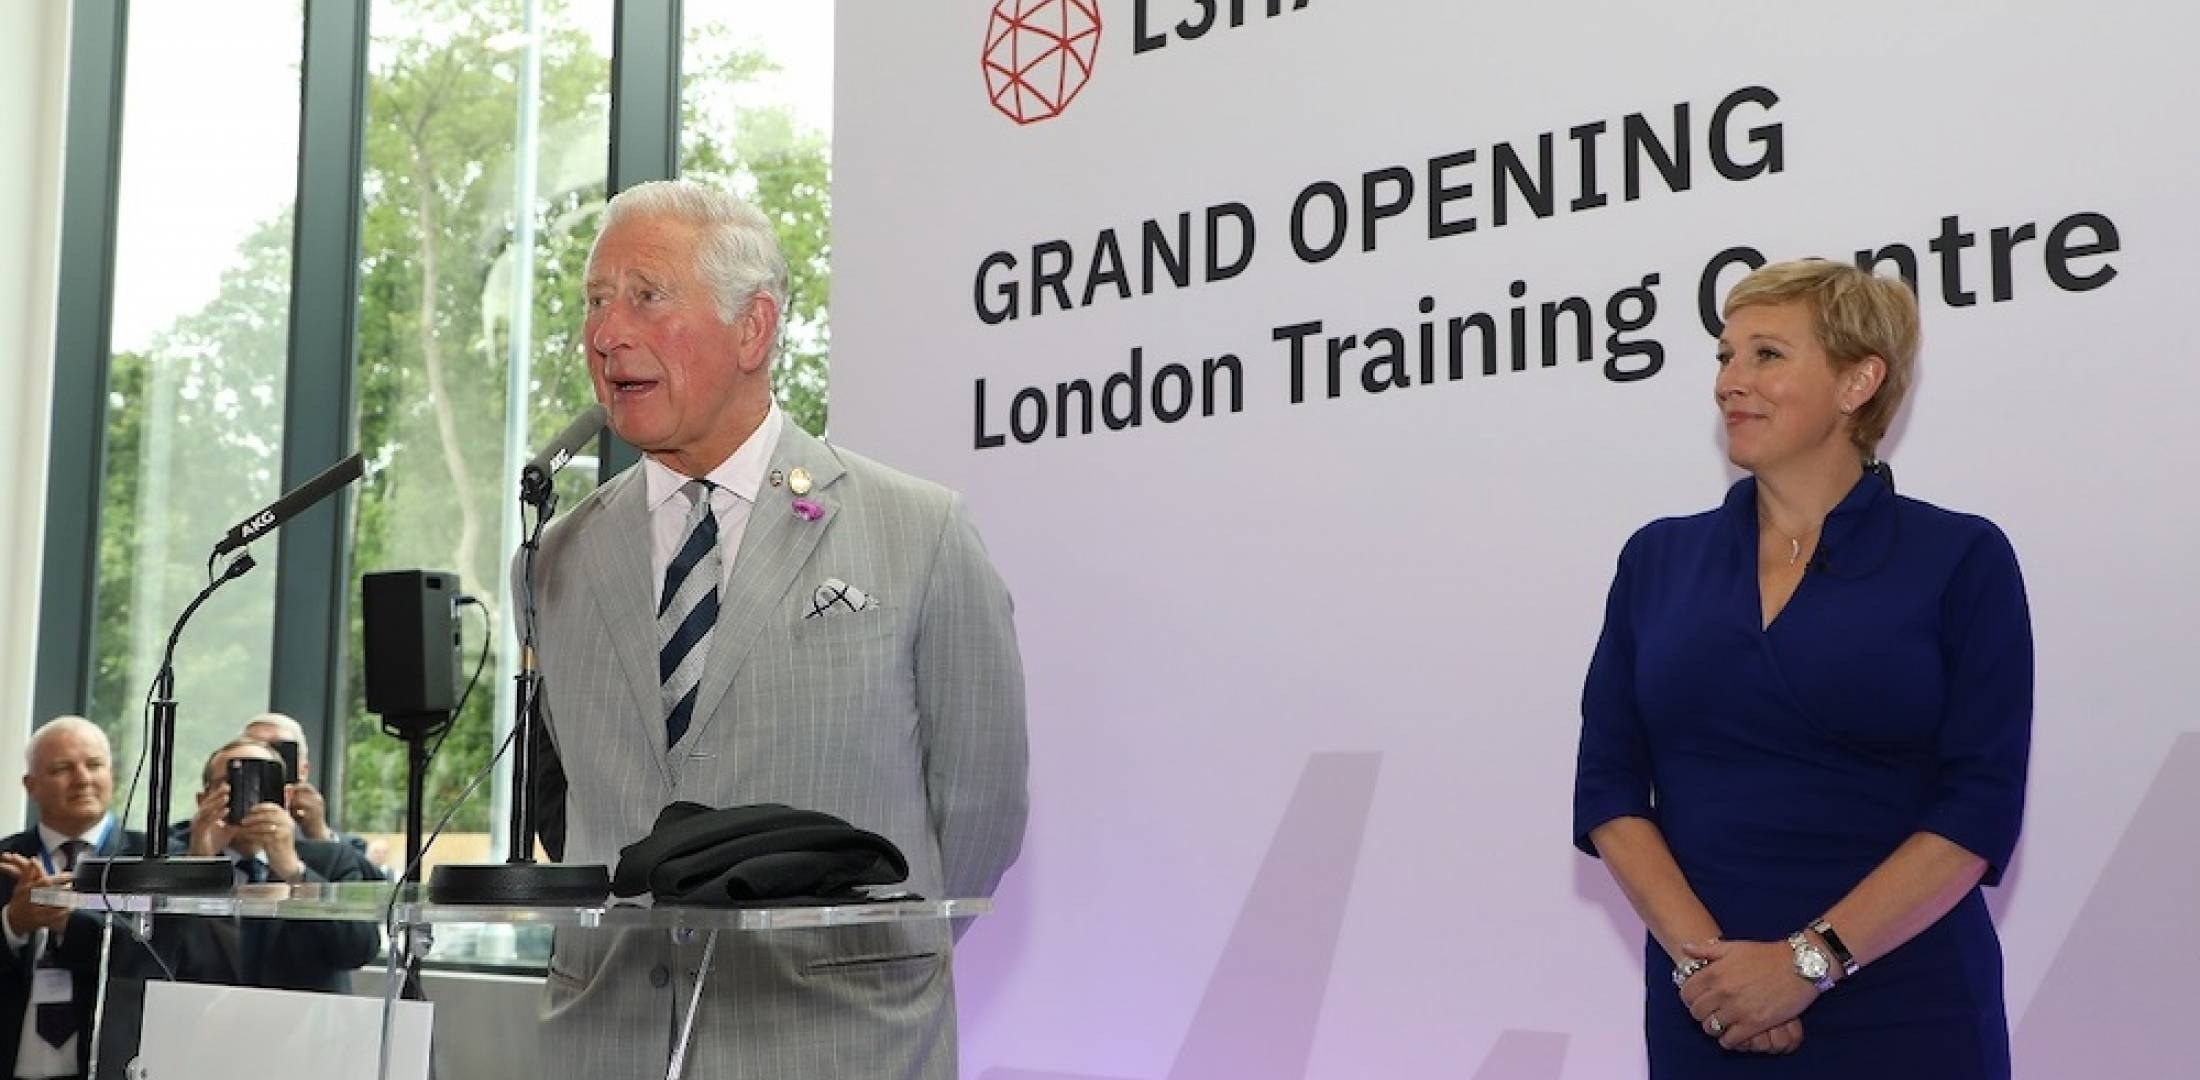 Prince Charles and Baroness Vere at L3Harris.